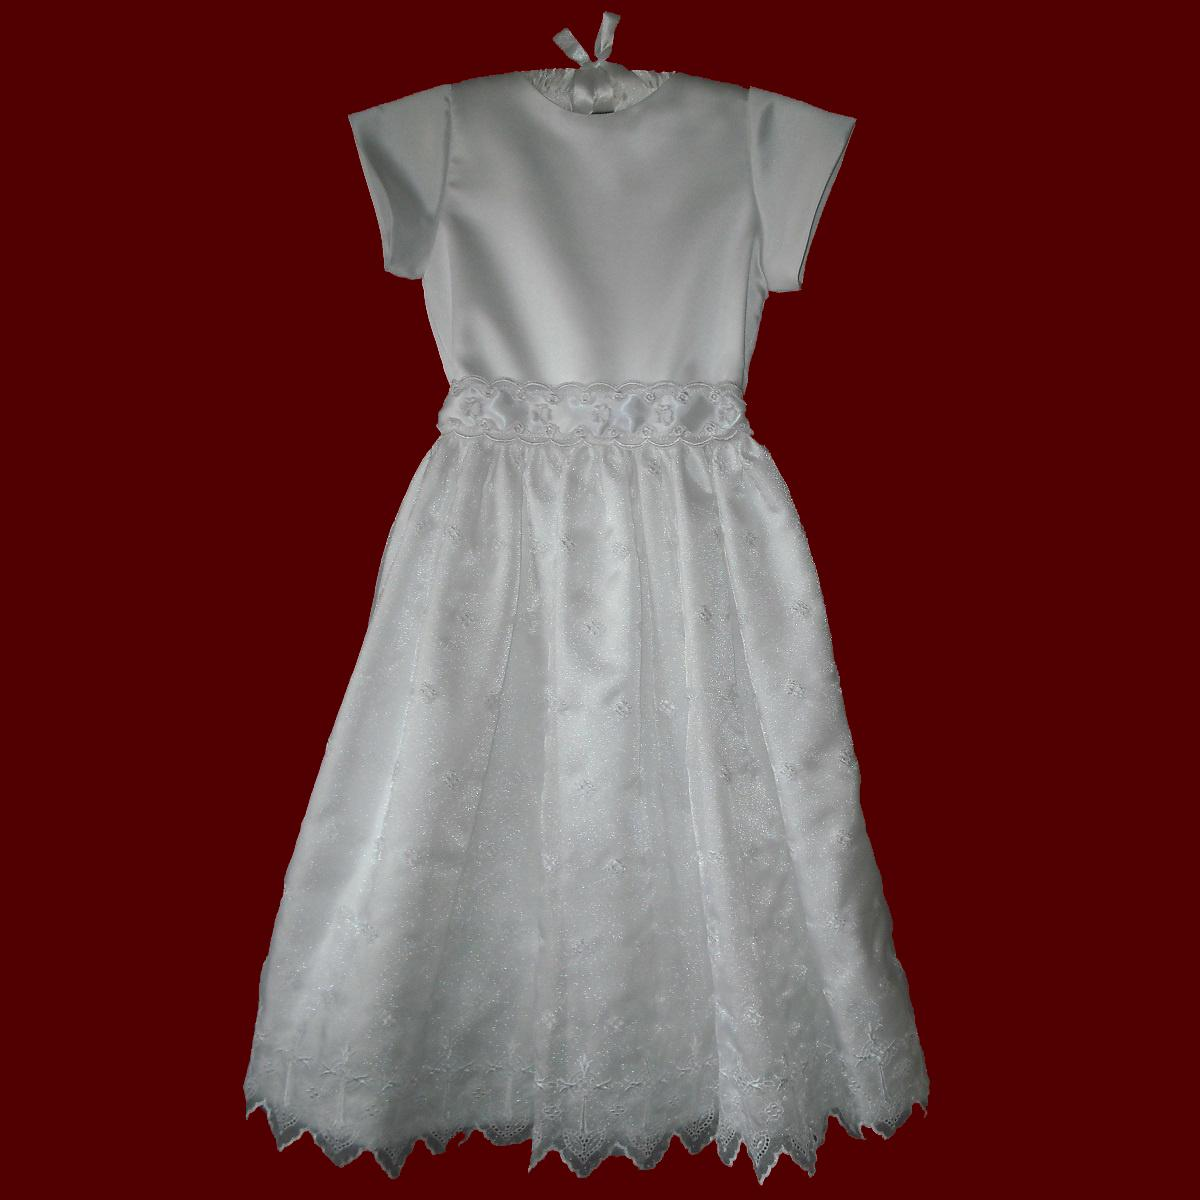 Embroidered Crosses Irish Girls Communion Dress